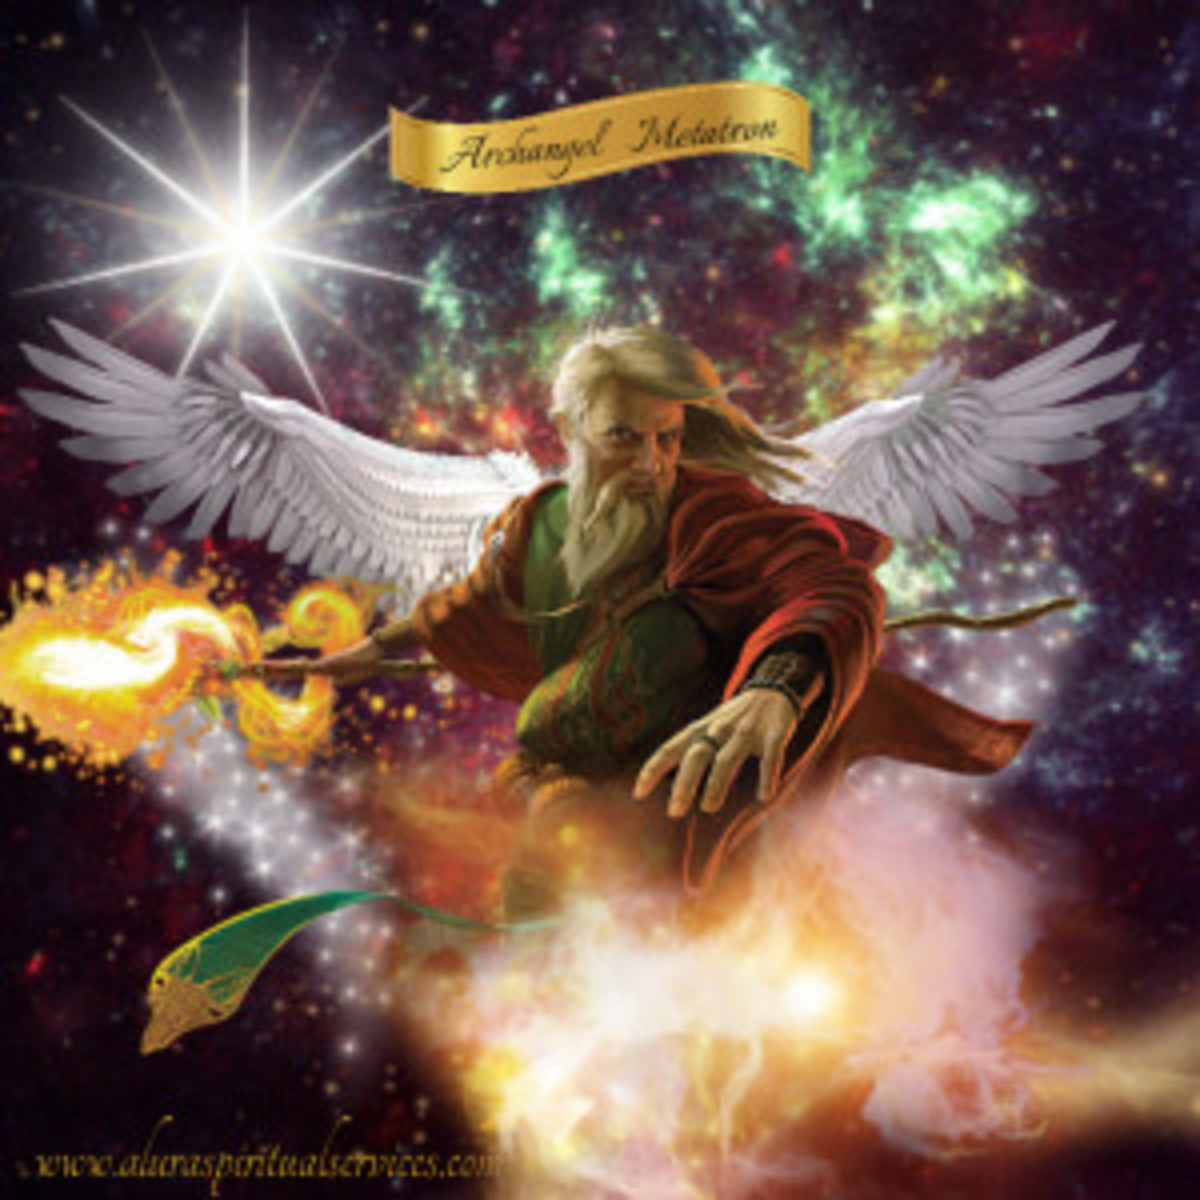 Metatron the Archangel, Myth or Fact?